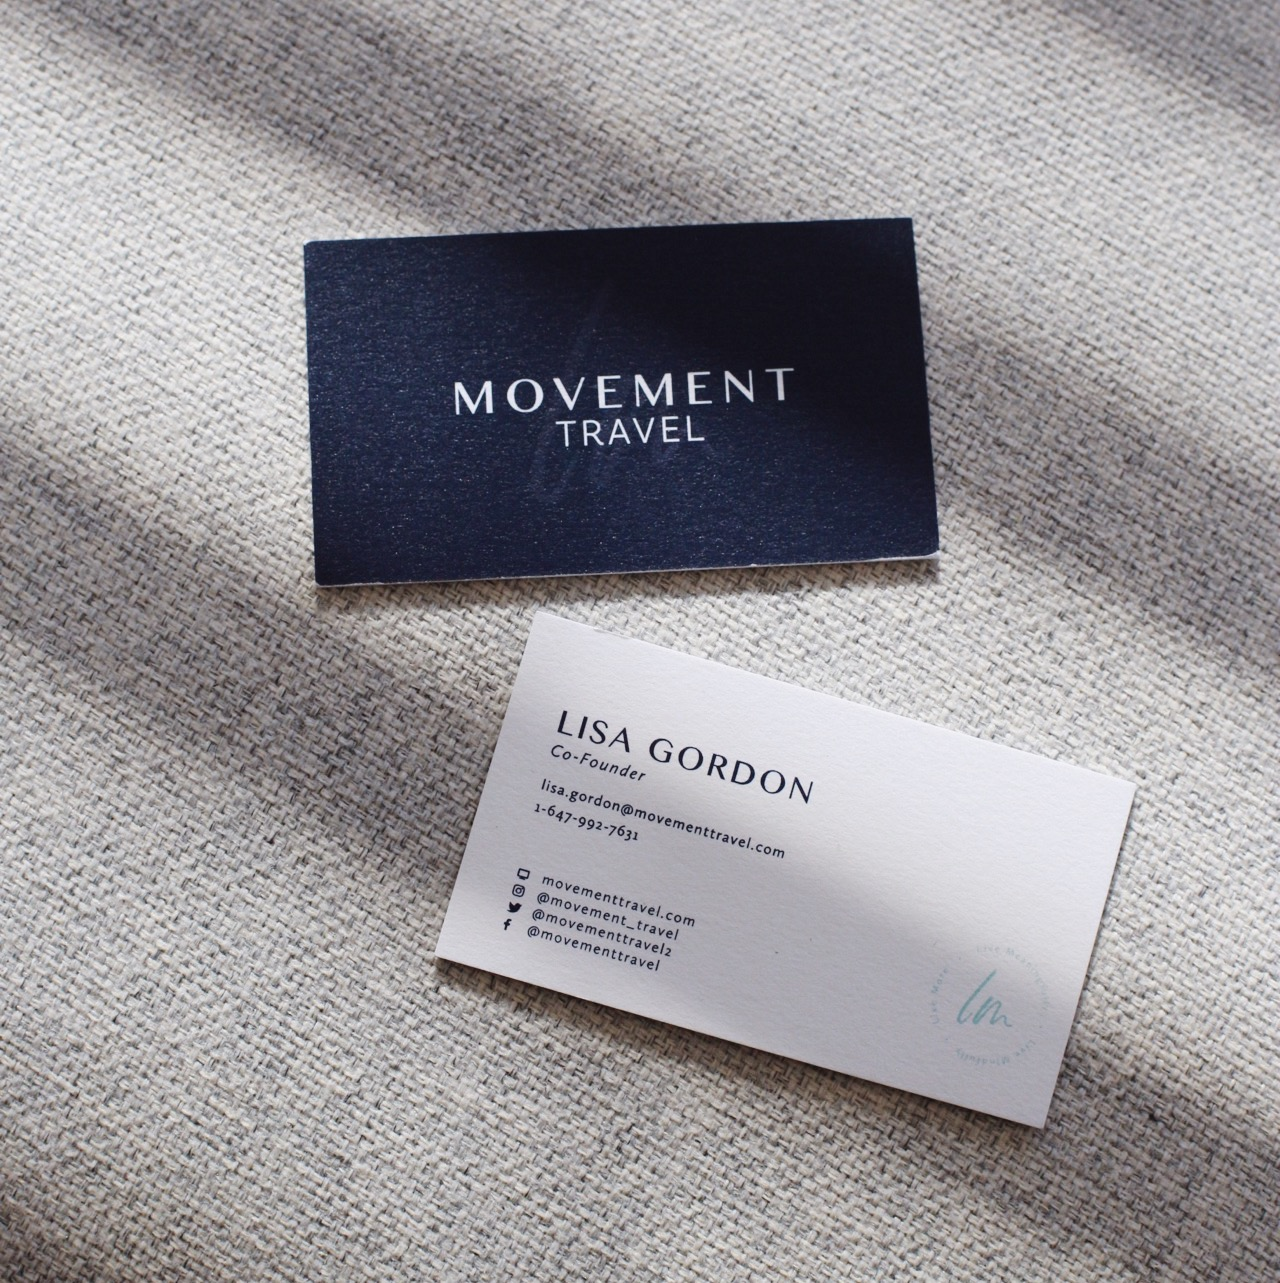 LM Movement Travel blue business cards on grey fabric background